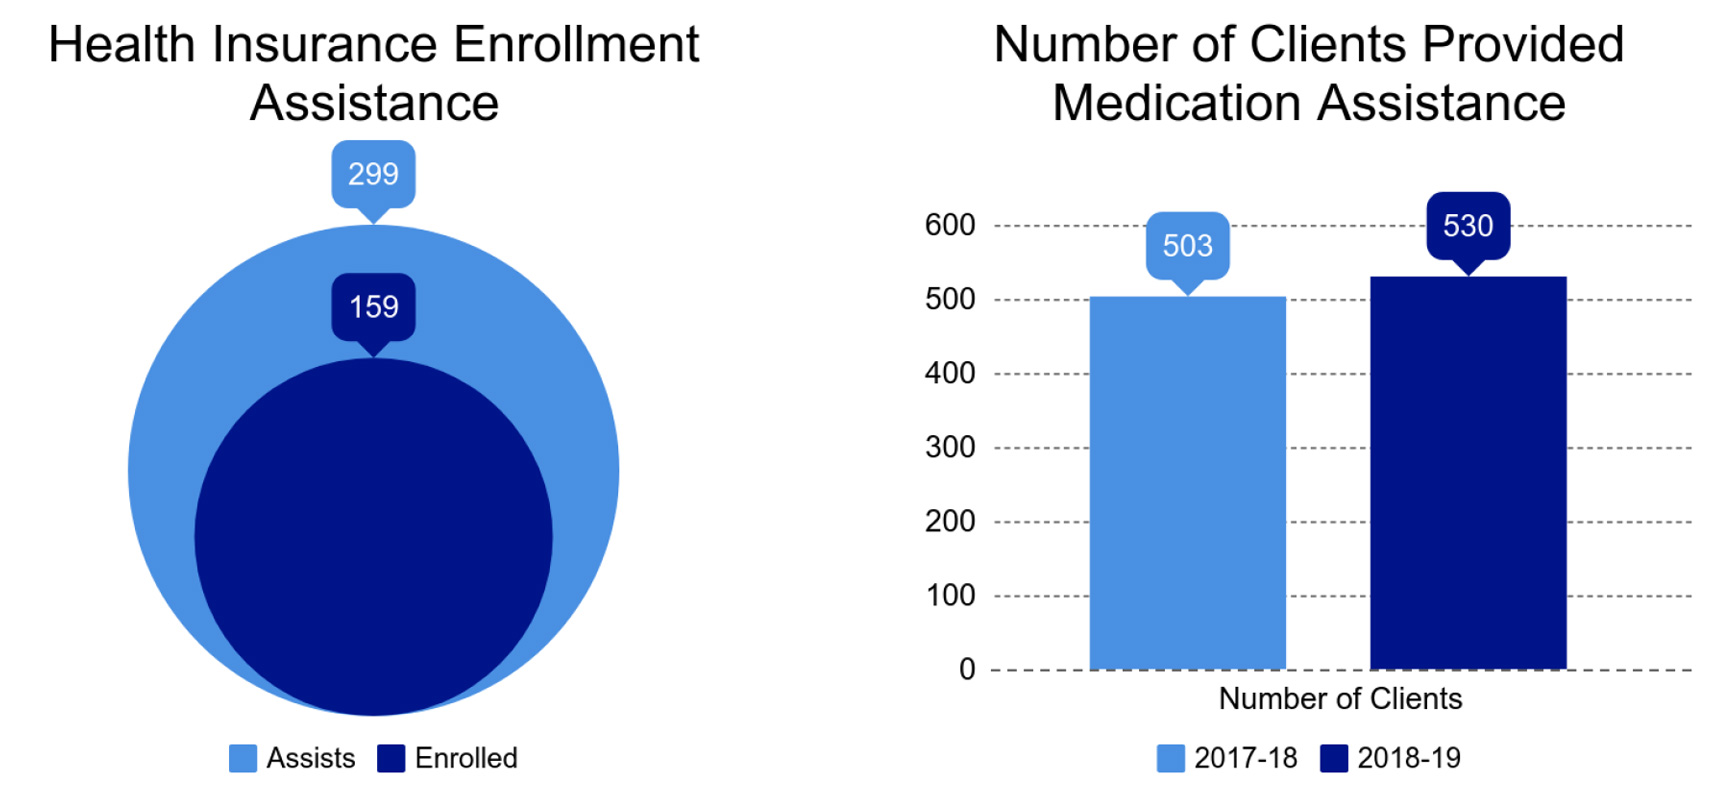 Two charts showing health insurance enrollment assistance out pacing actual health insurance enrollees as well as number of people needing medication assistance increasing